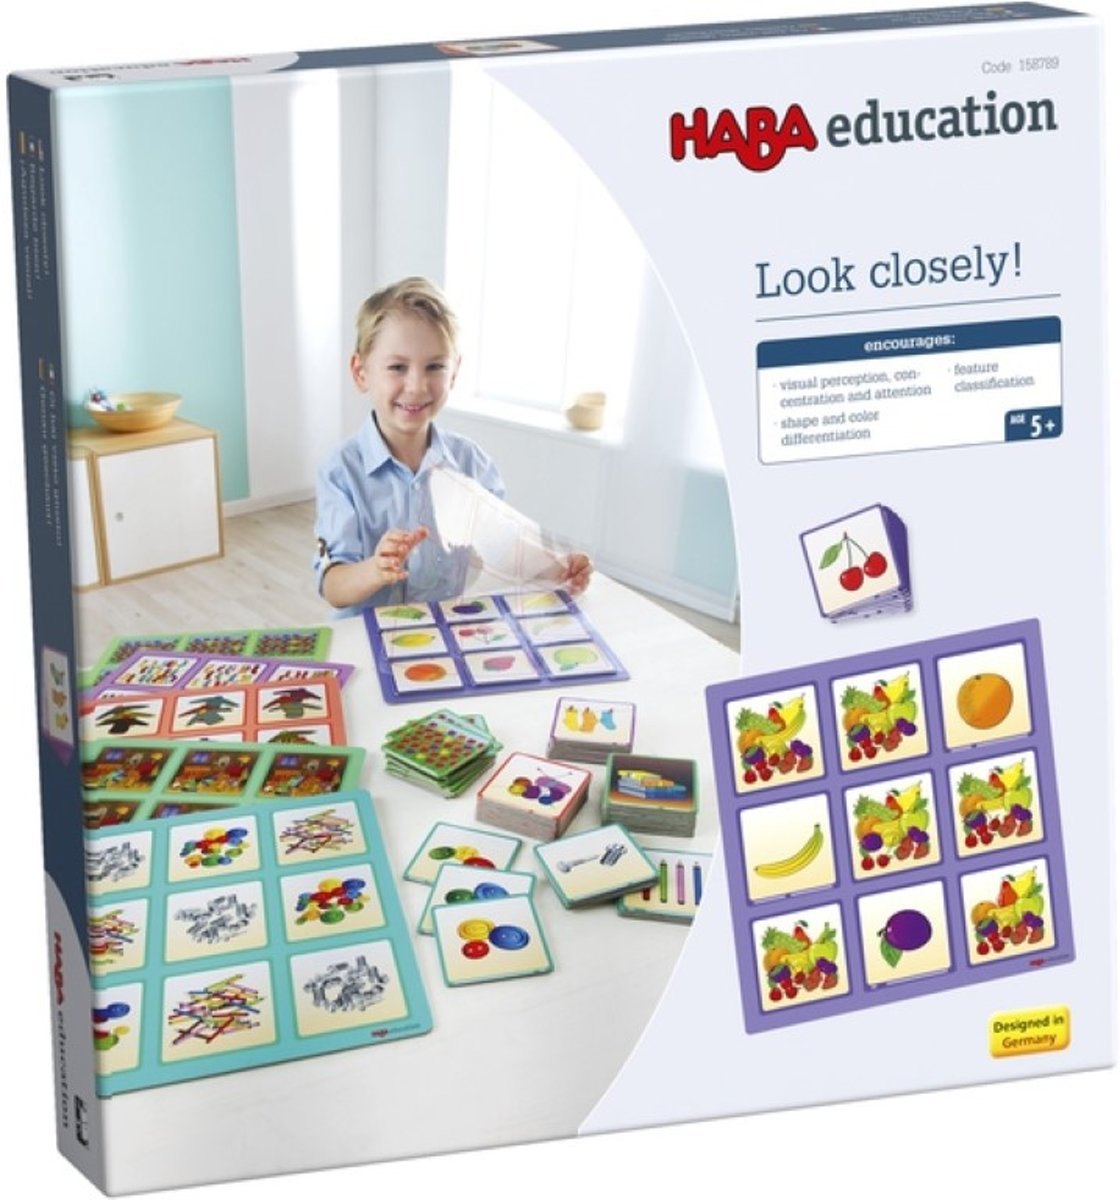 Haba Education - Look Closely! 69 pieces